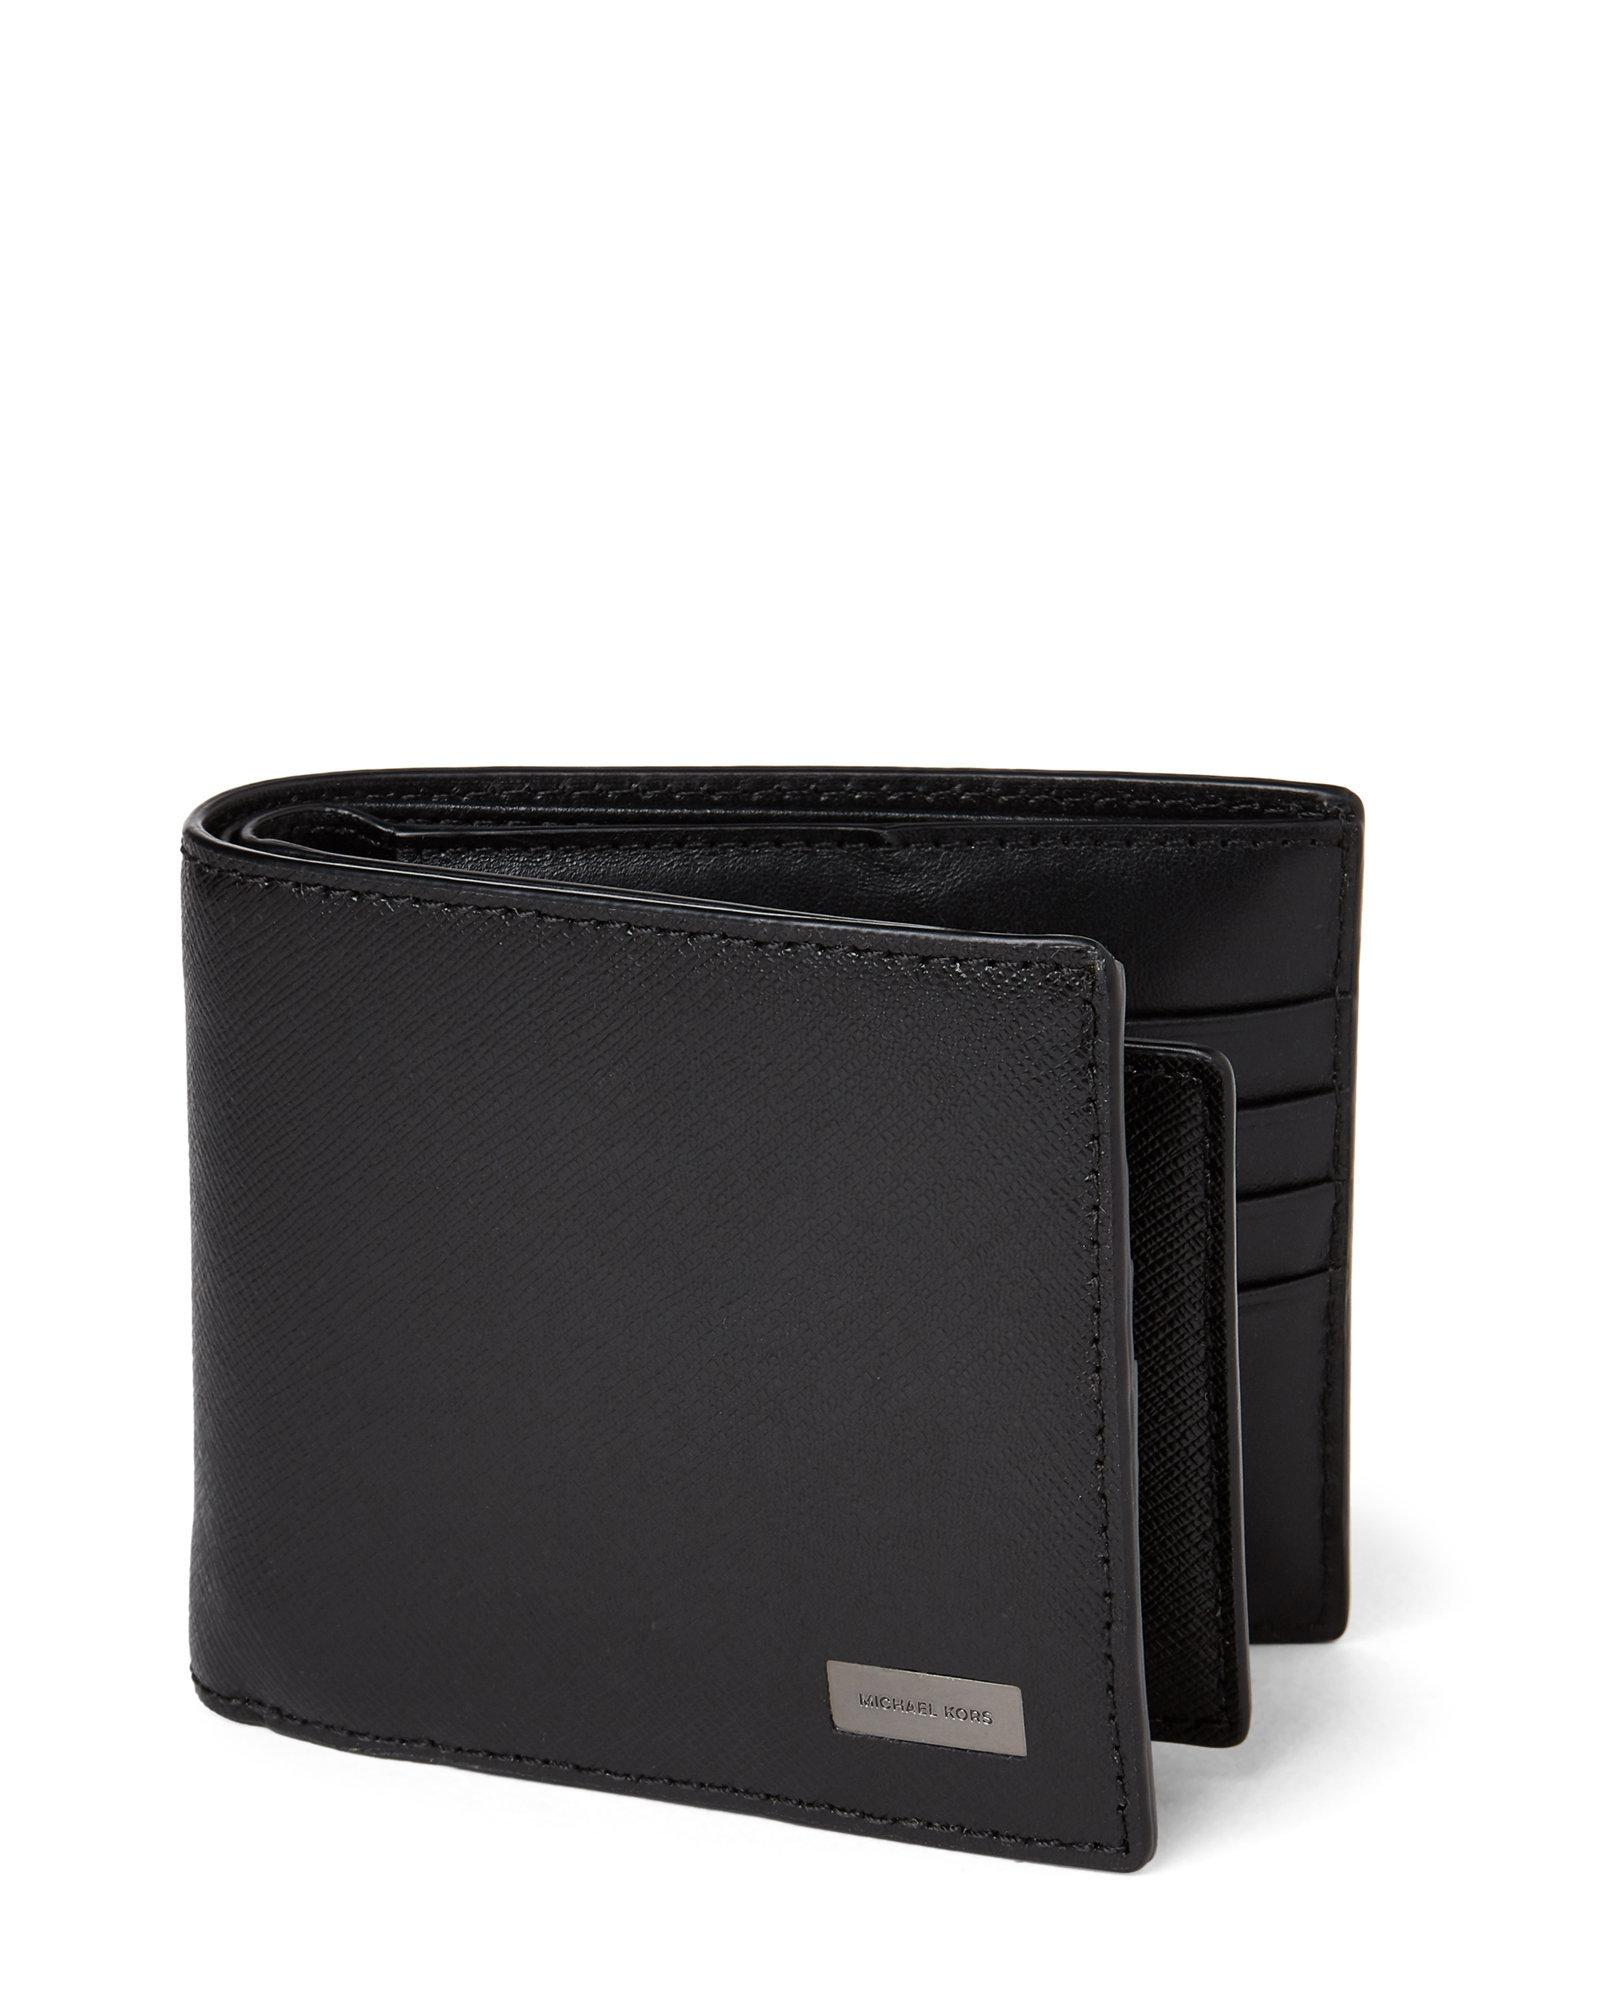 241625889f82 ... reduced michael kors. mens black andy saffiano leather bifold wallet  98043 3e09a